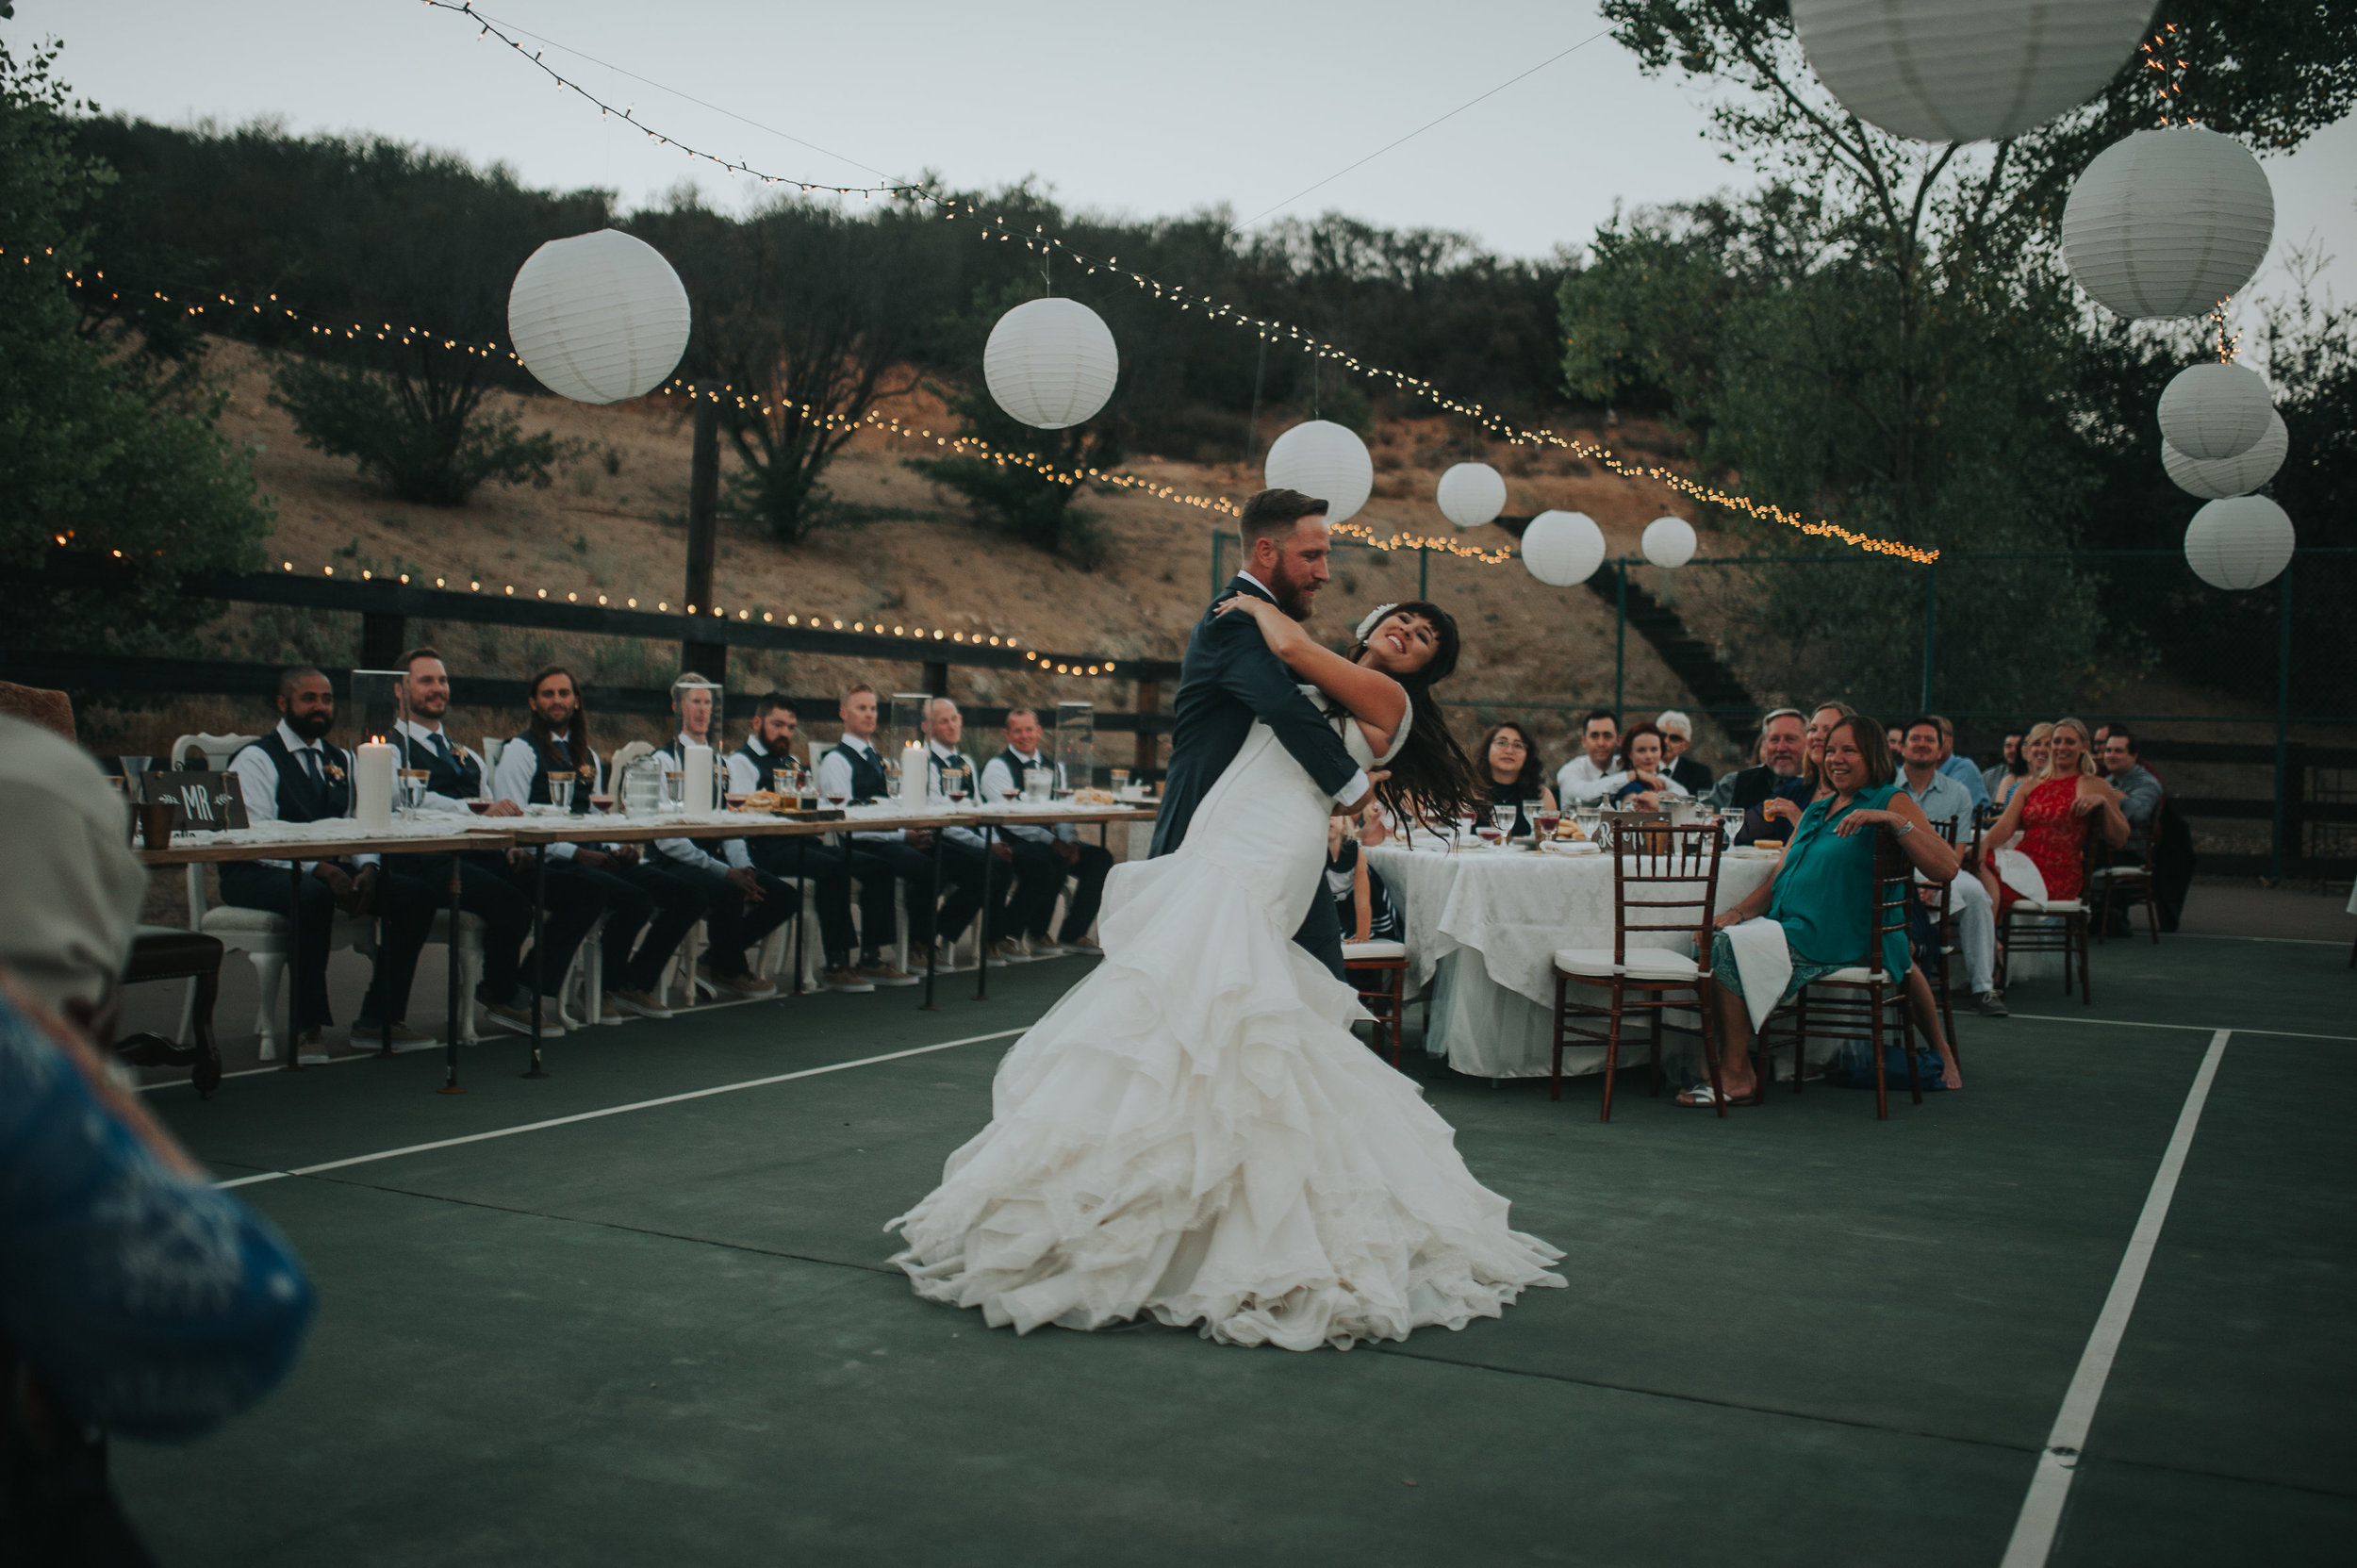 Bride and groom dancing at a wedding reception in Murrieta which is part of the Temecula Valley.